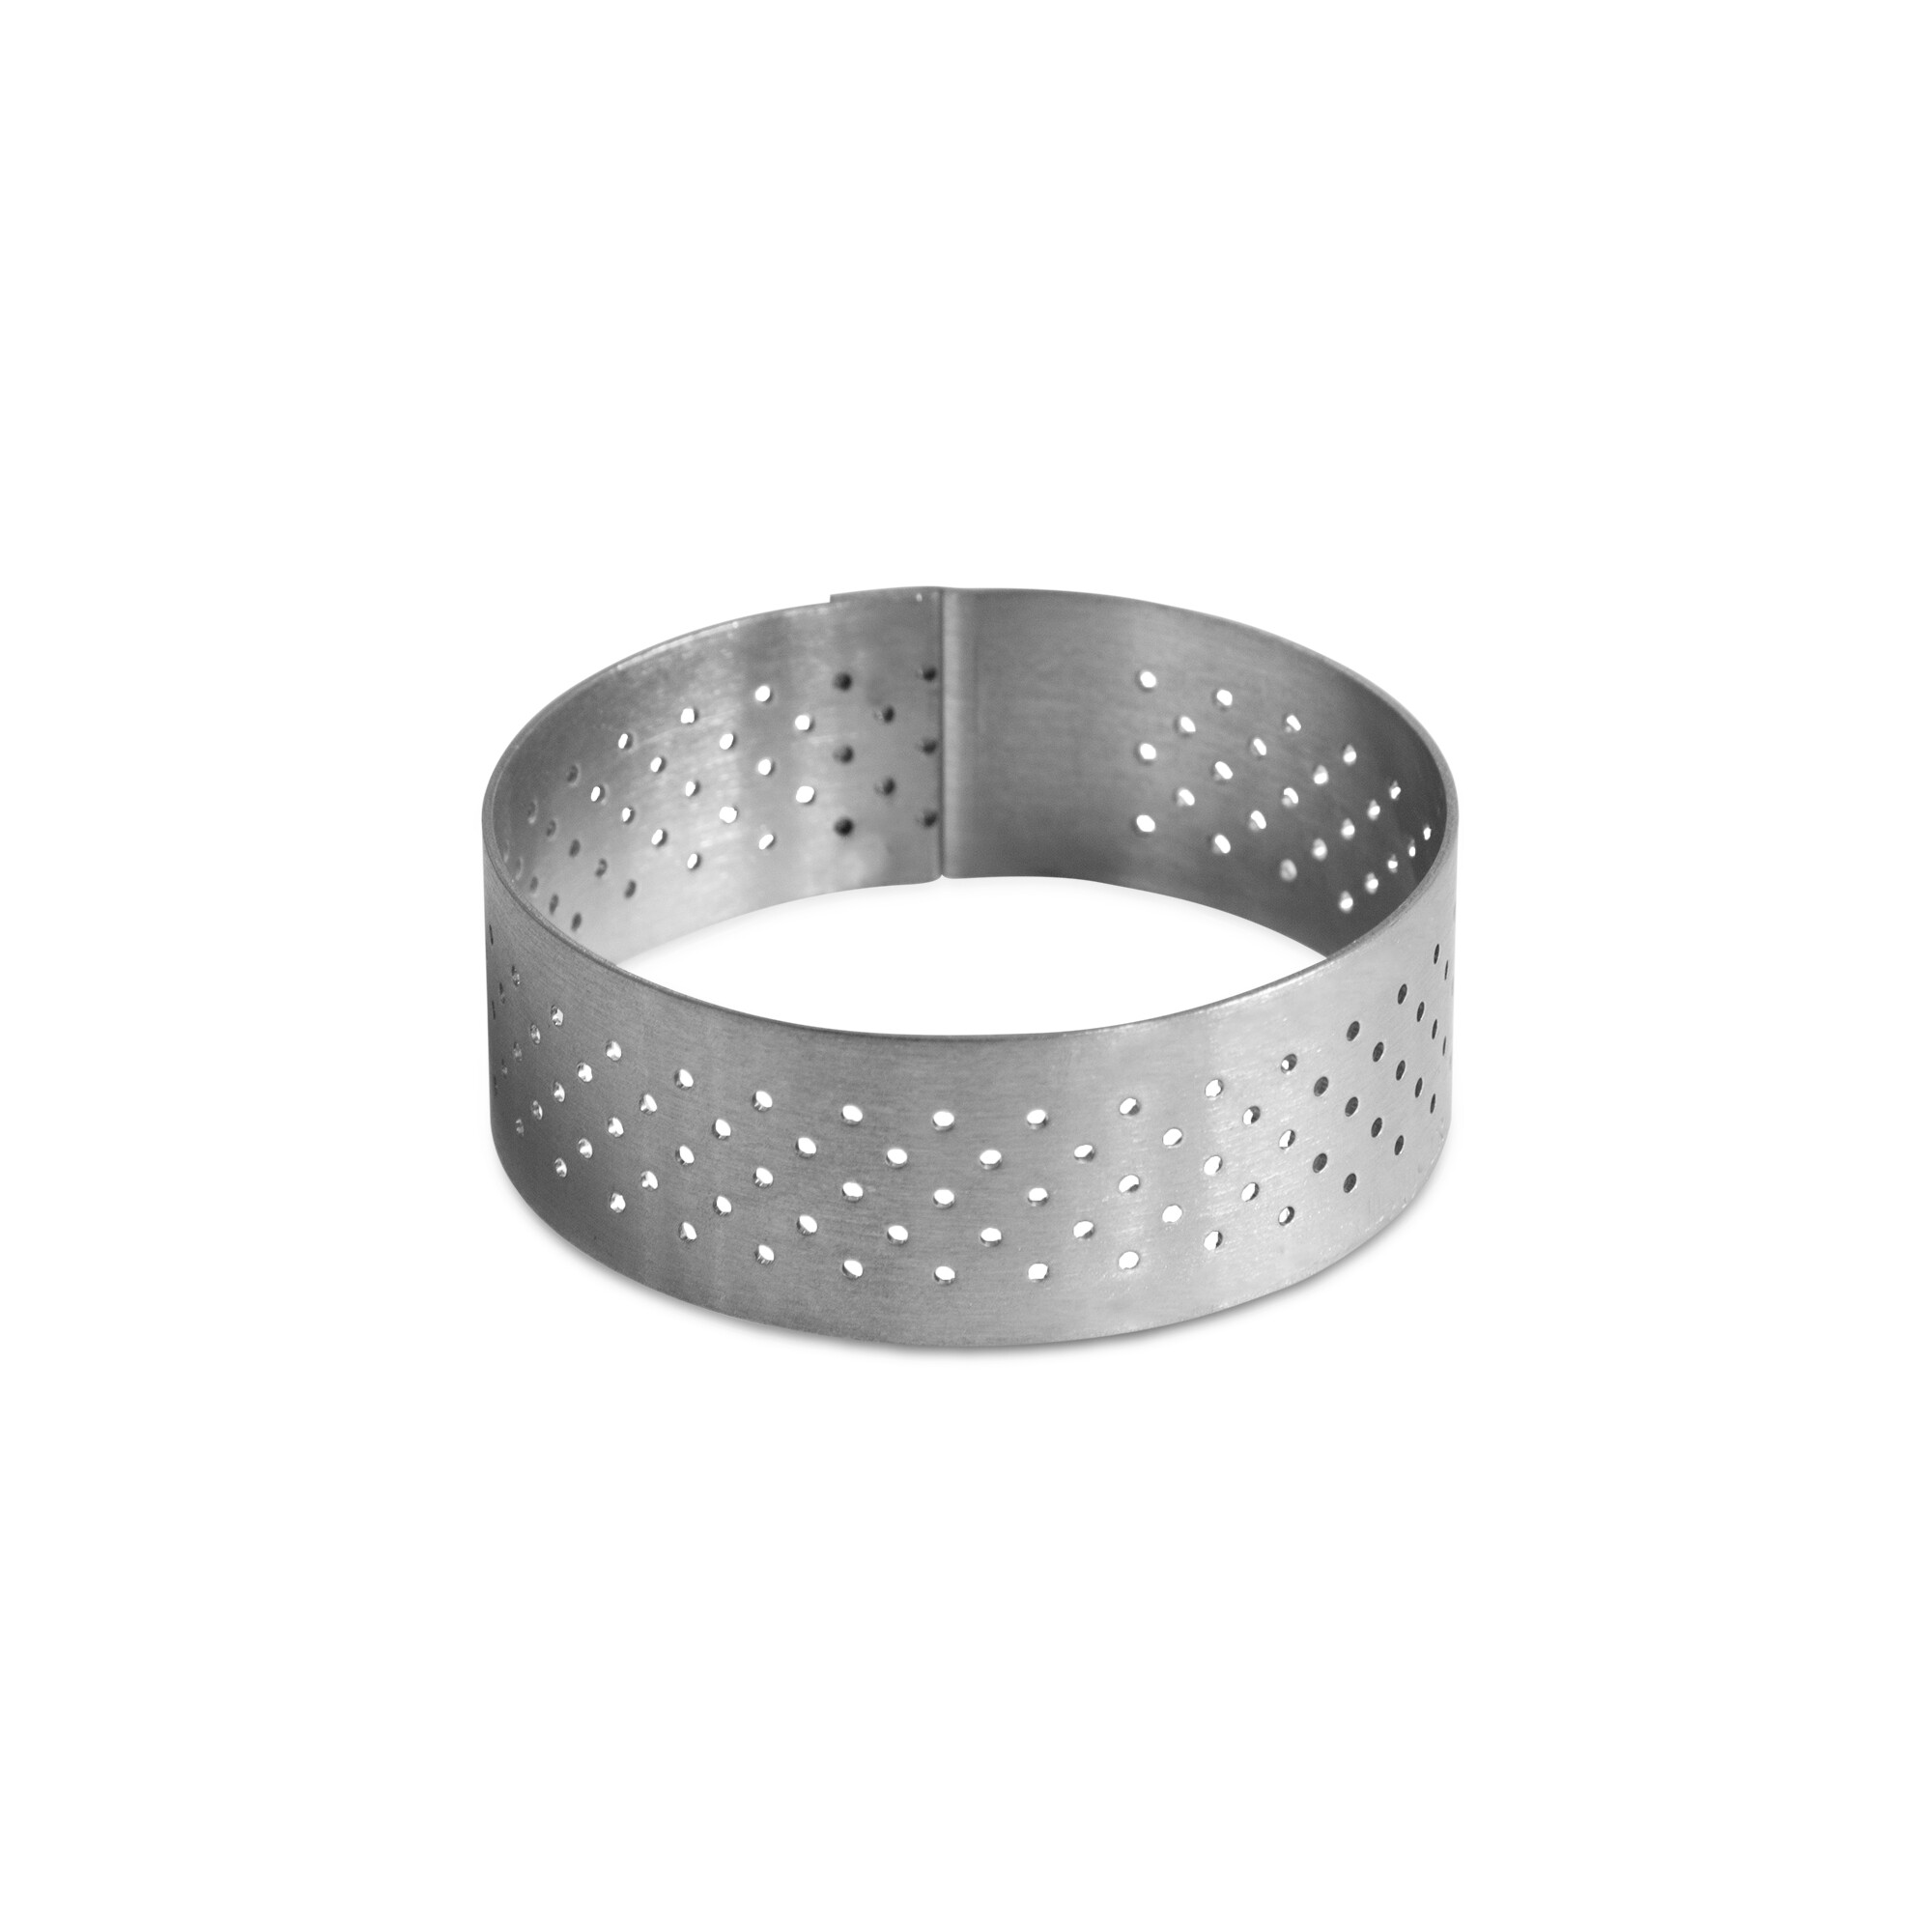 Round - perforated